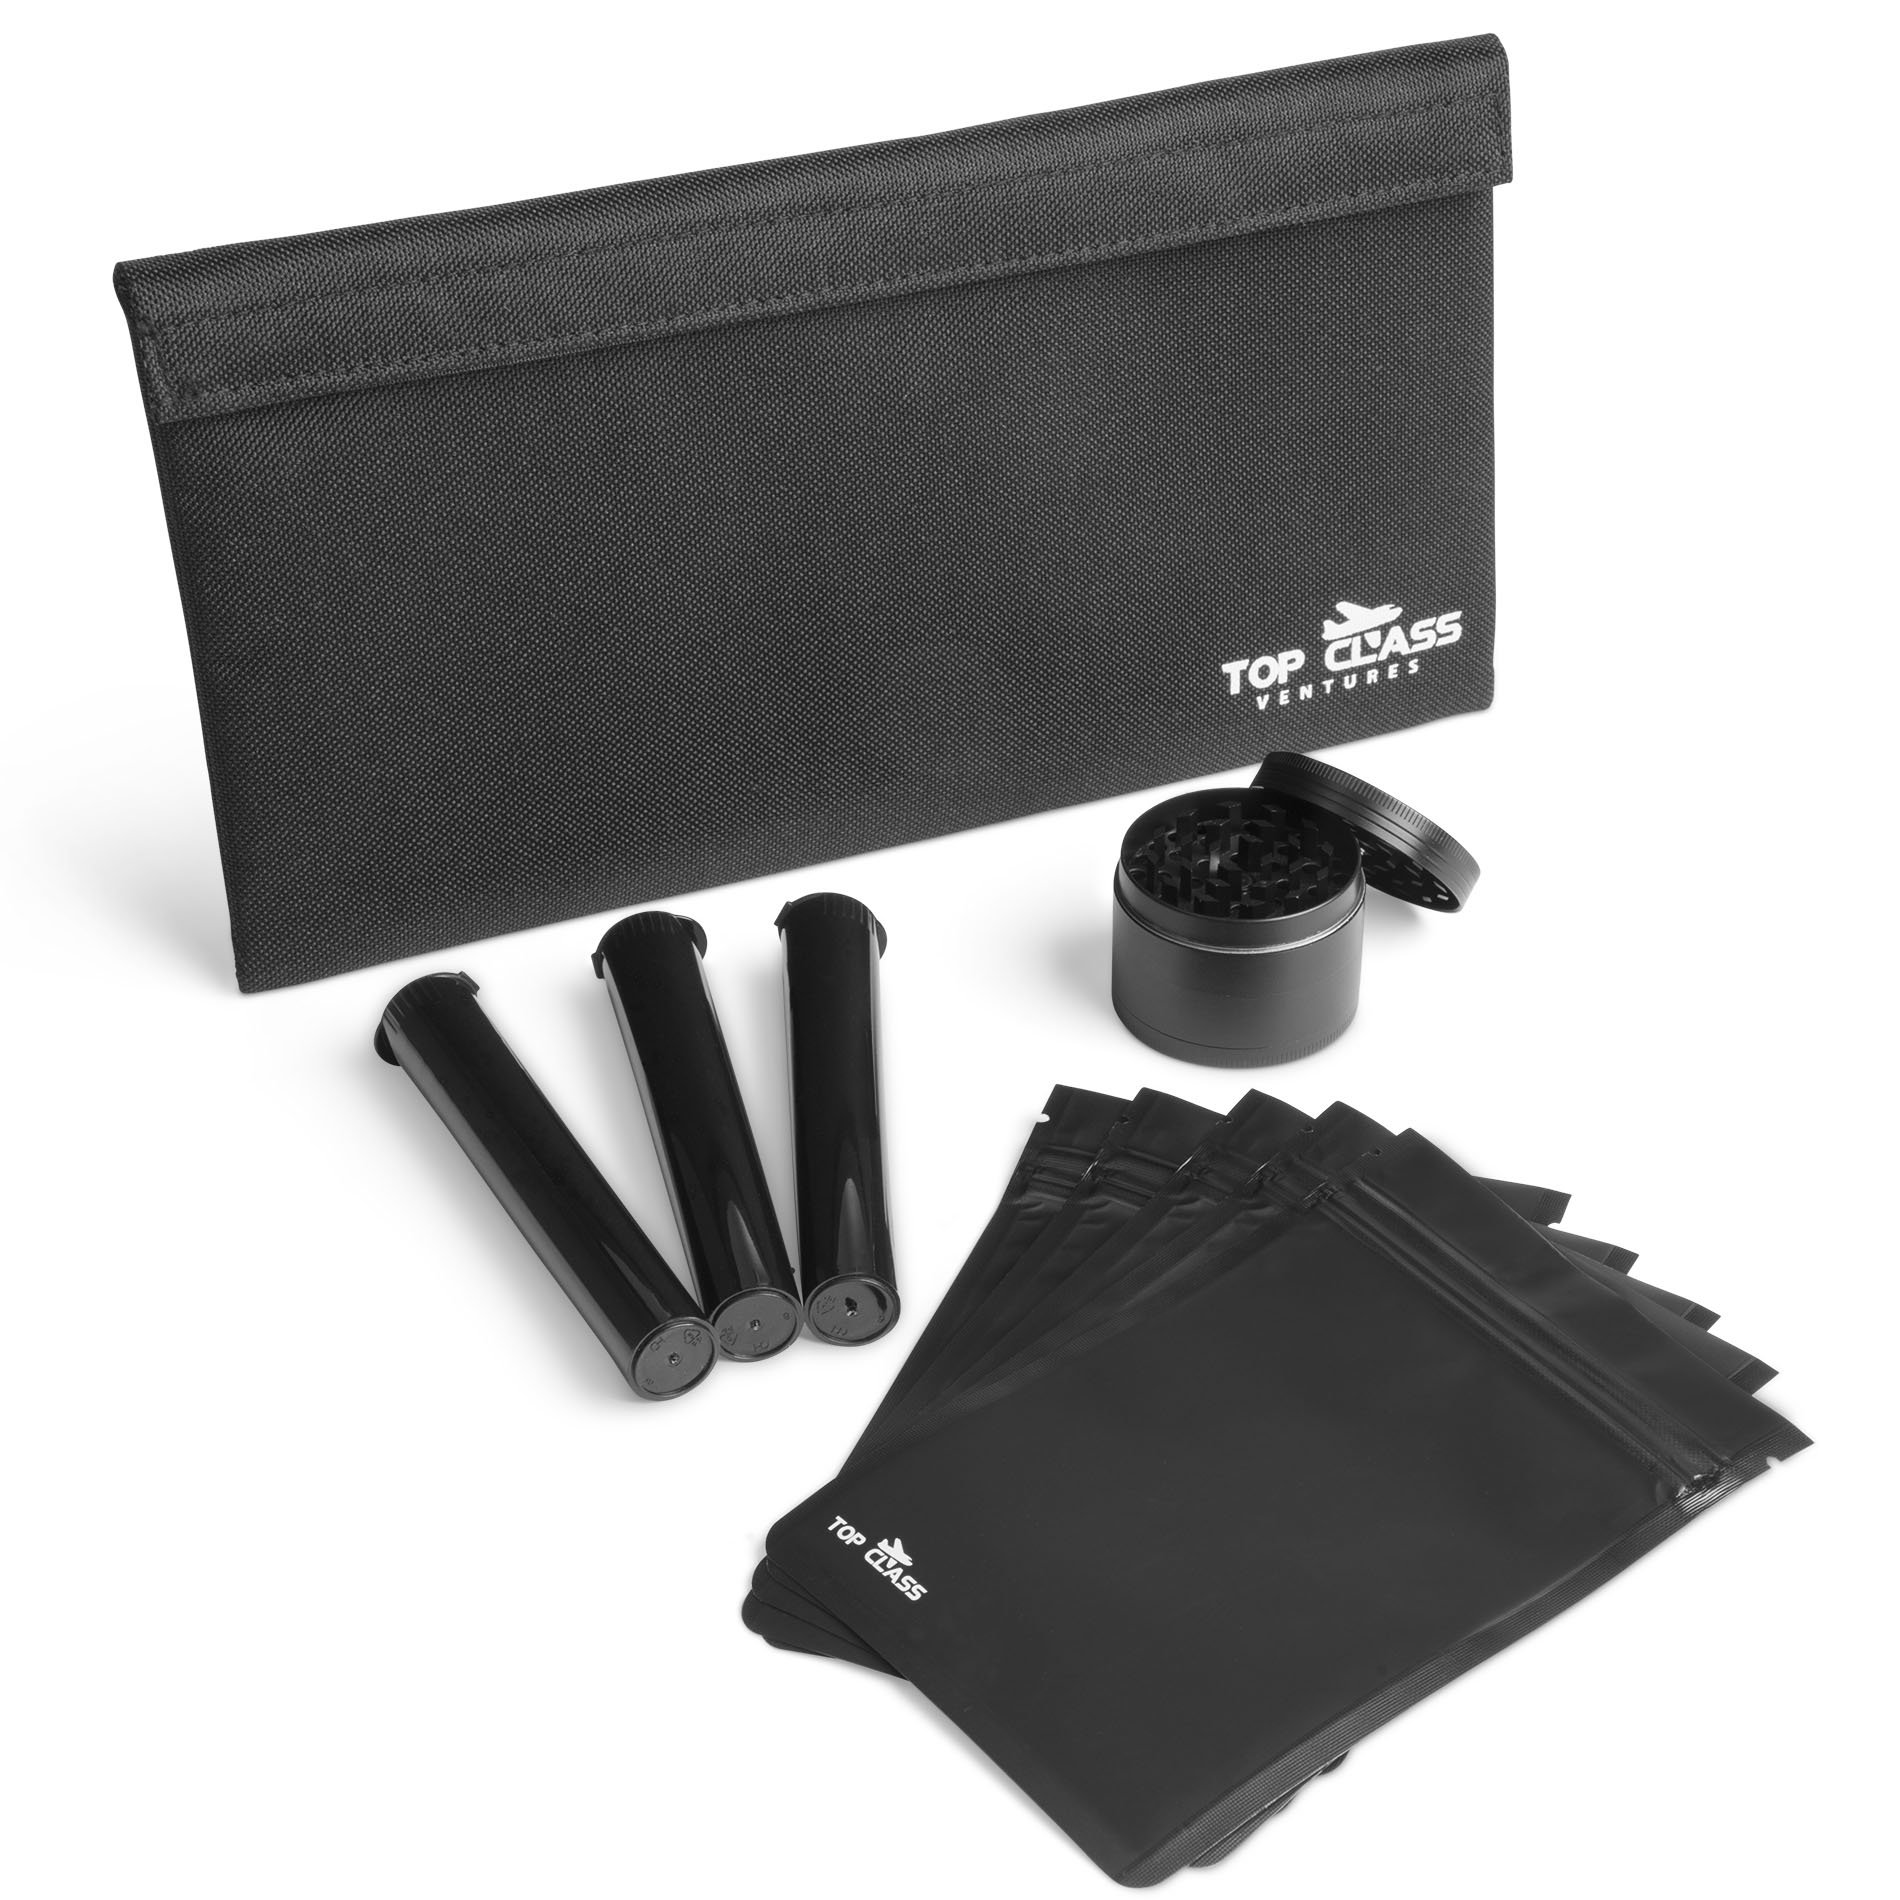 Smell Proof Bag with Smoking Accessories – Container Pouch PLUS Grinder, Resealable Bags, and Doob Tubes – Stash Storage Case - Smellproof No Odor Bags